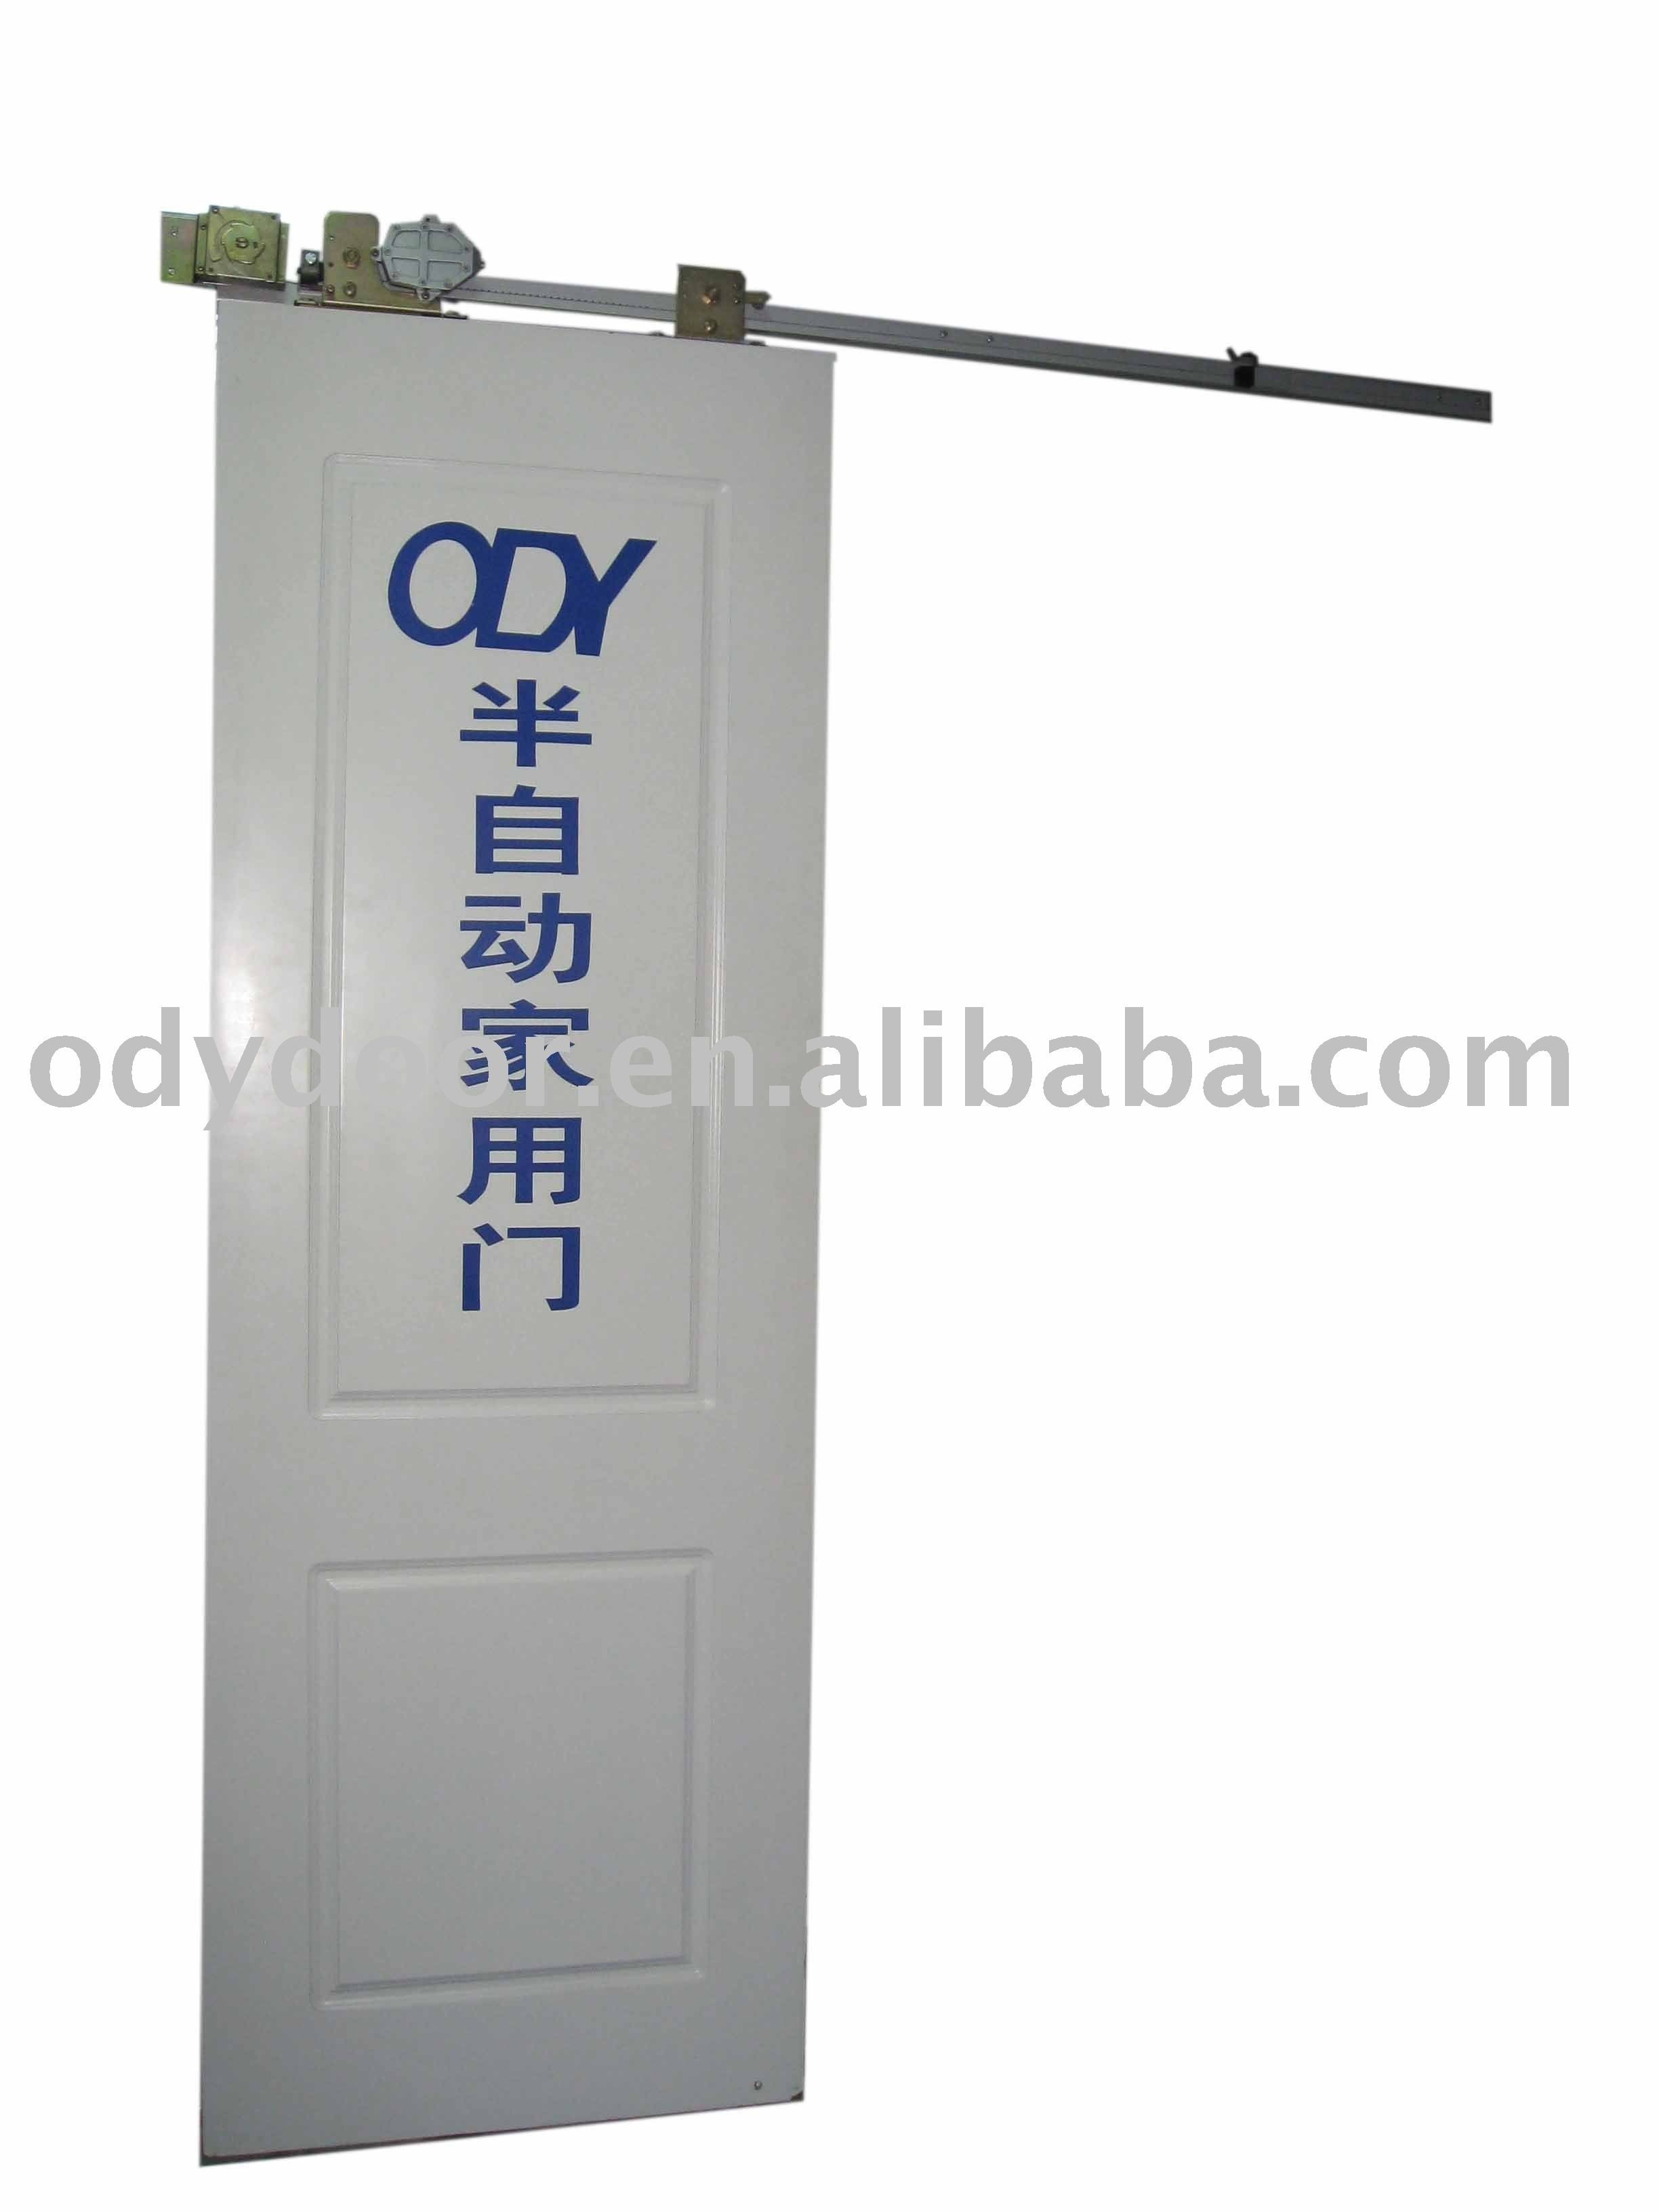 efficiency genie finish inspiration design together opener excellent non automatic typical doors repair door garage size closer full electric for as stunning ca rich with type of what image well safety inspirational and problems